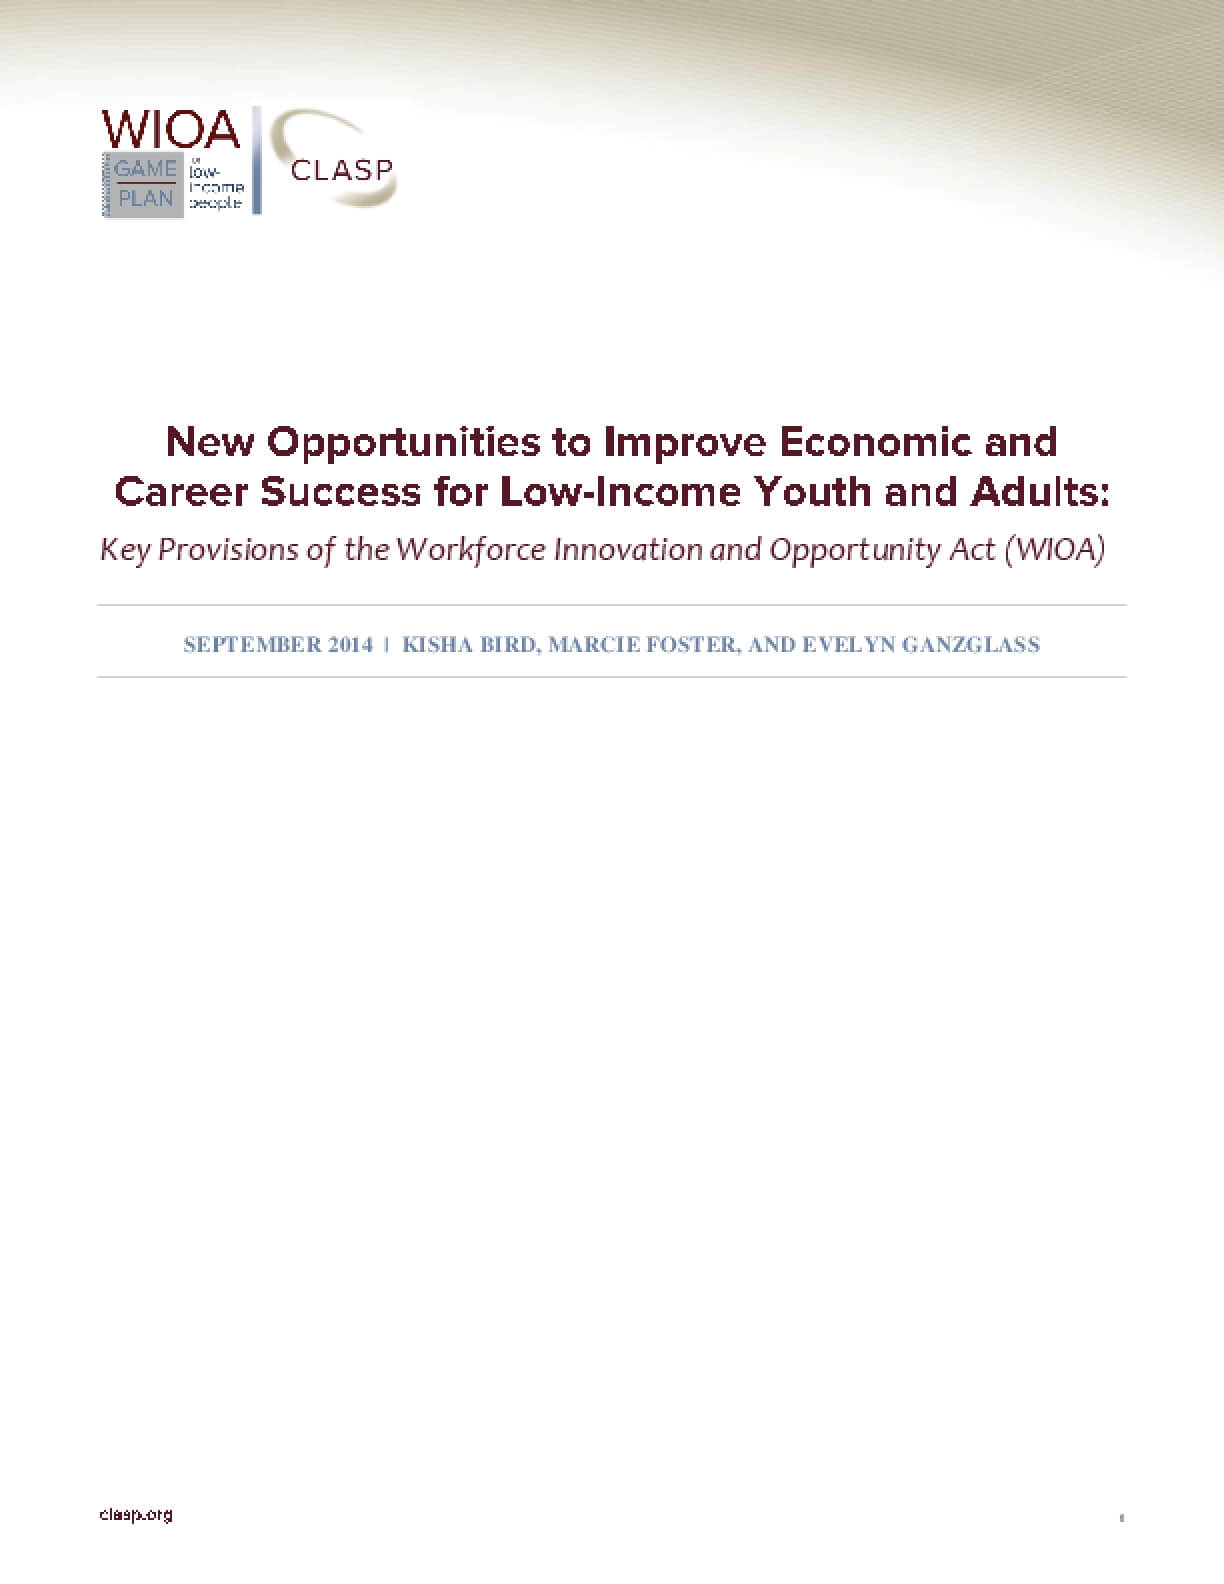 New Opportunities to Improve Economic and Career Success for Low-Income Youth and Adults: Key Provisions of the Workforce innovation and Opportunity Act (WIOA)